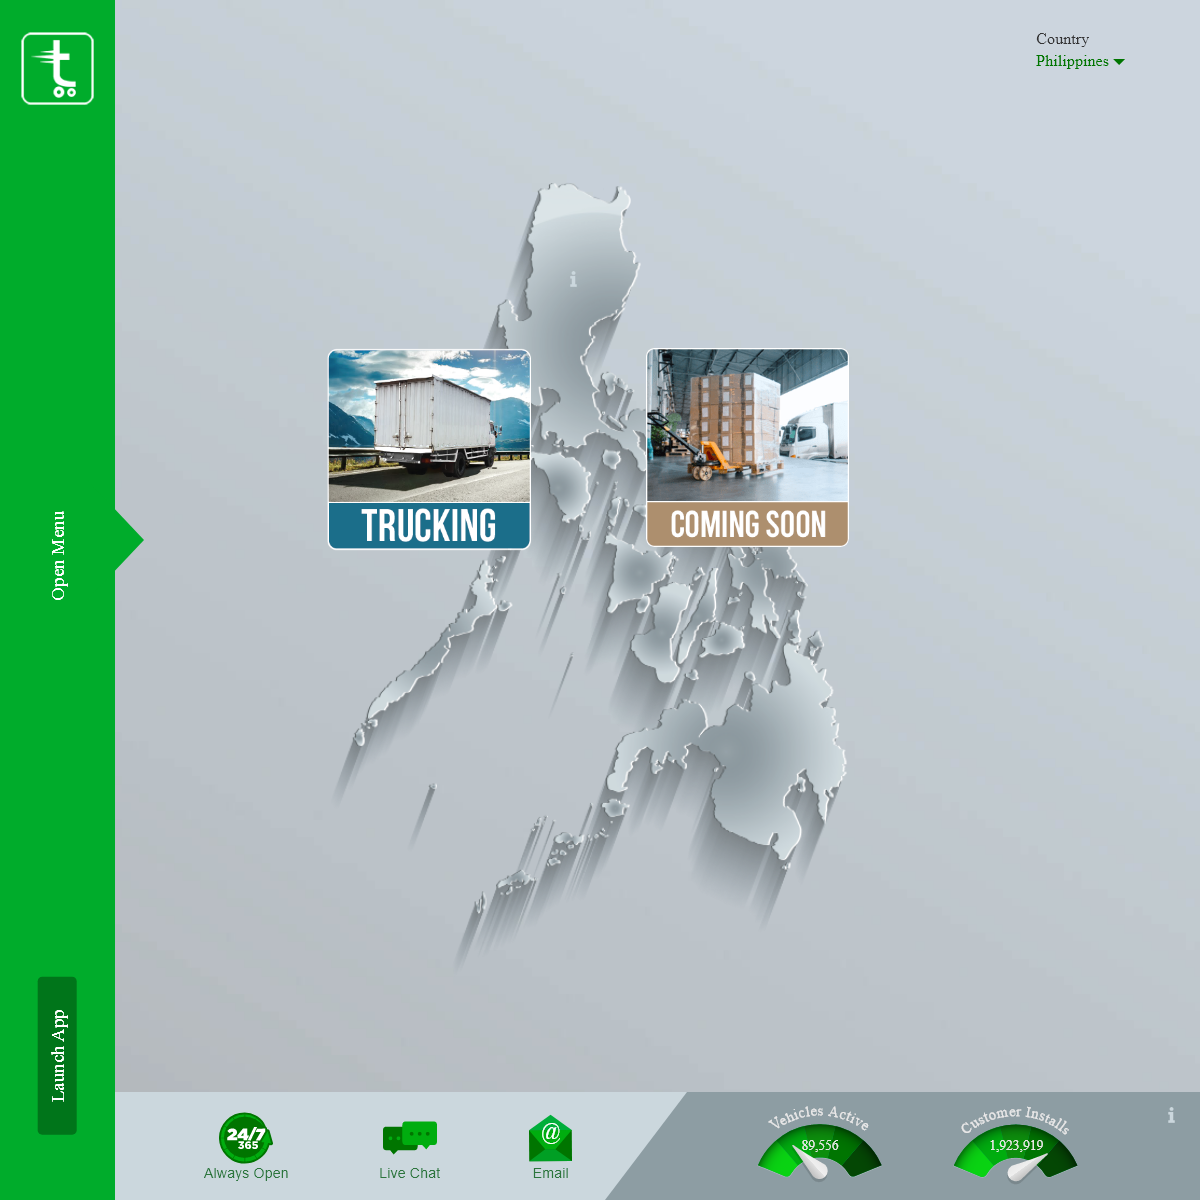 Logistics Company in the Philippines for Same Day Delivery Service